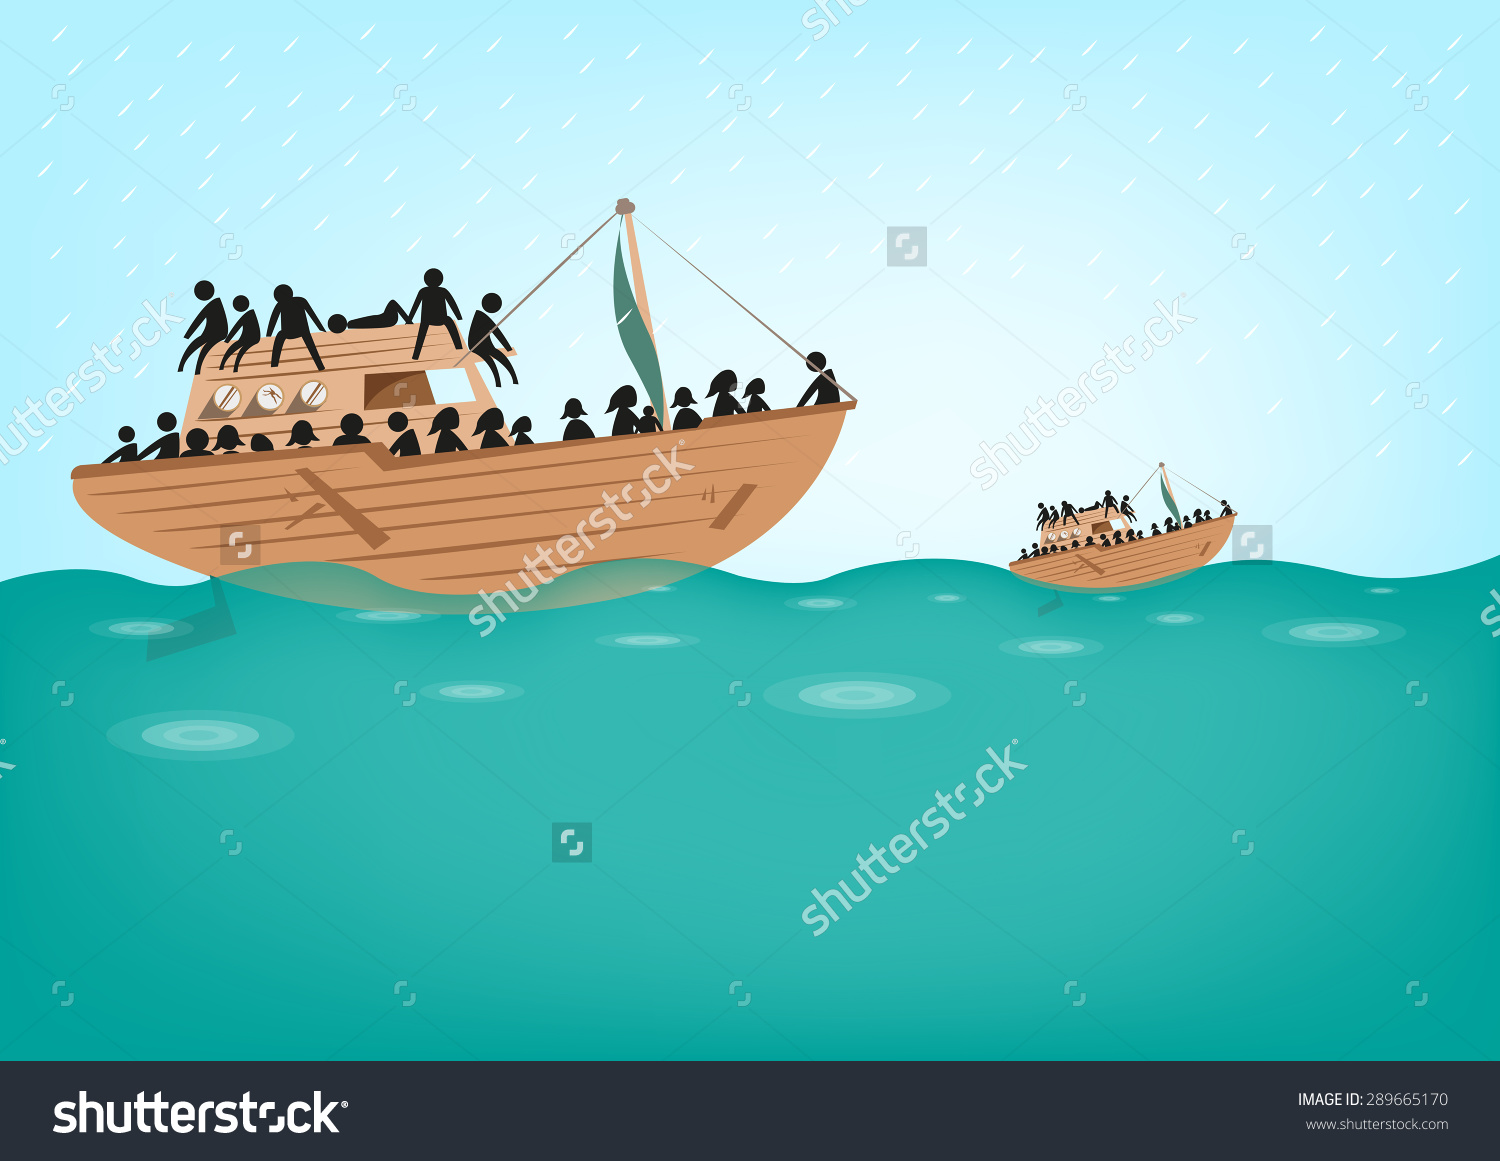 Boat People Stateless Refugees Risking Lives Stock Vector.